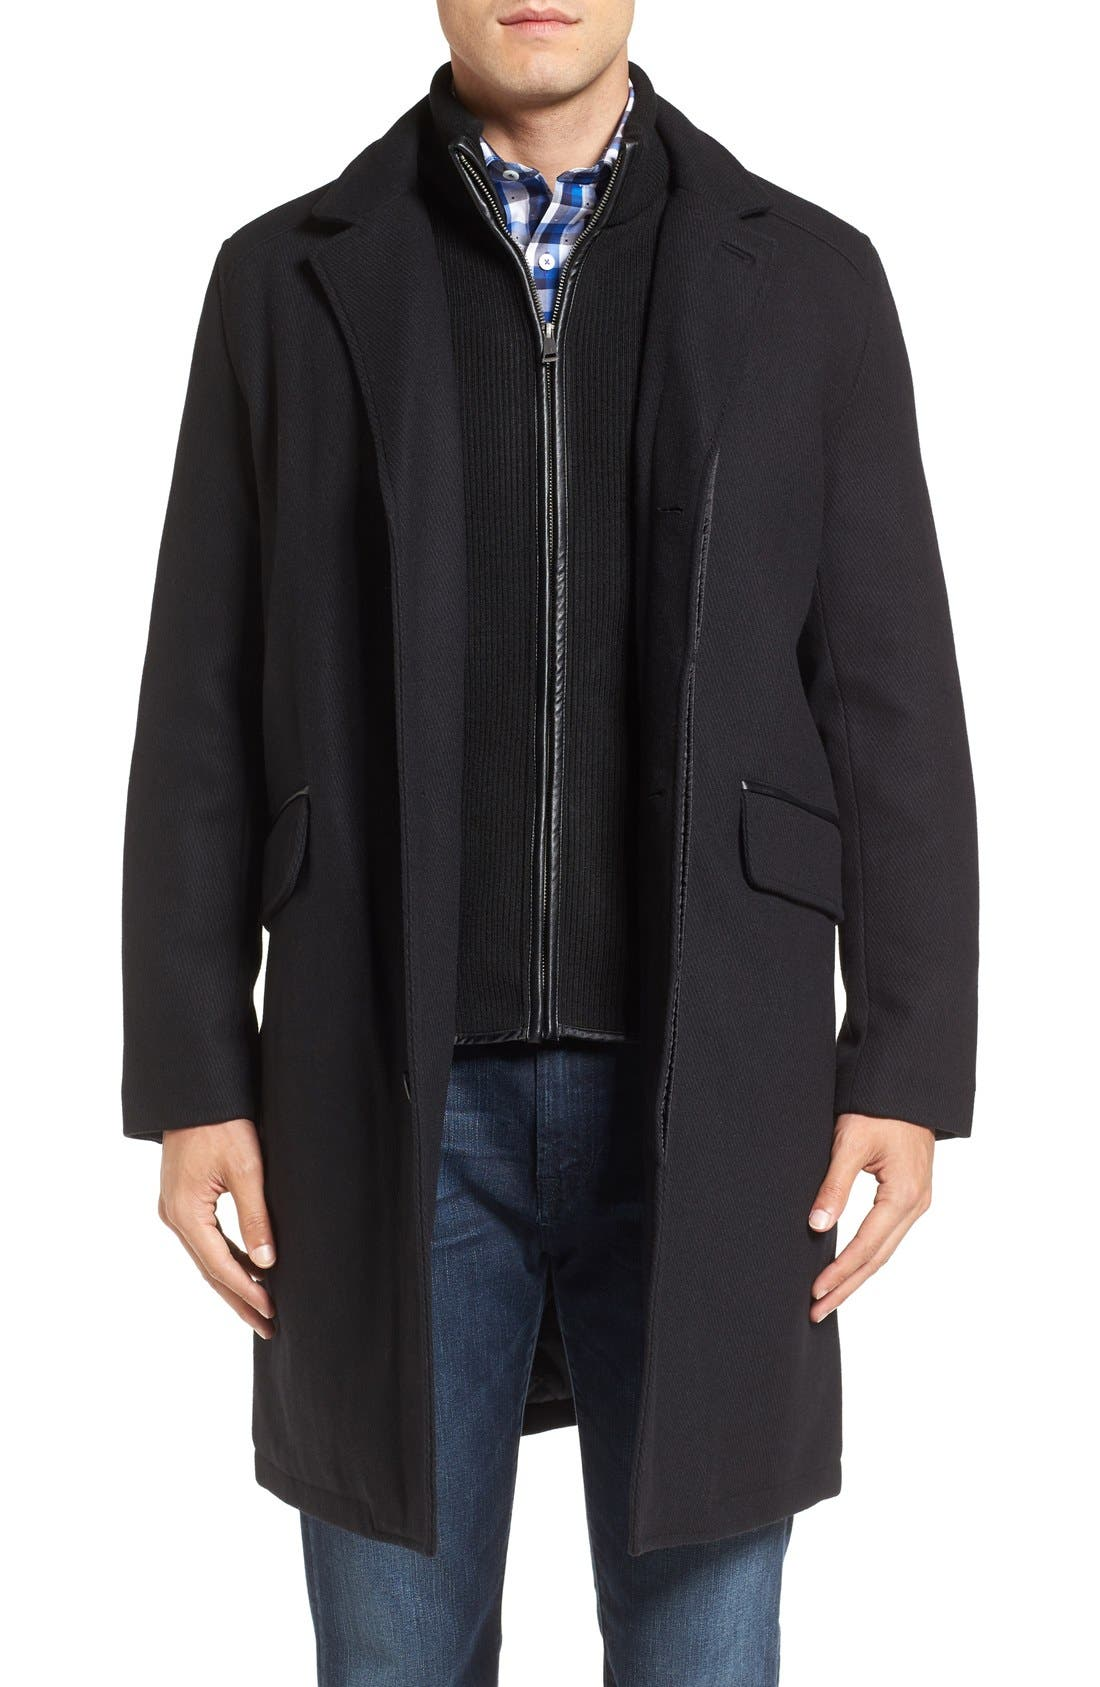 Main Image - Cole Haan Wool Blend Overcoat with Knit Bib Inset